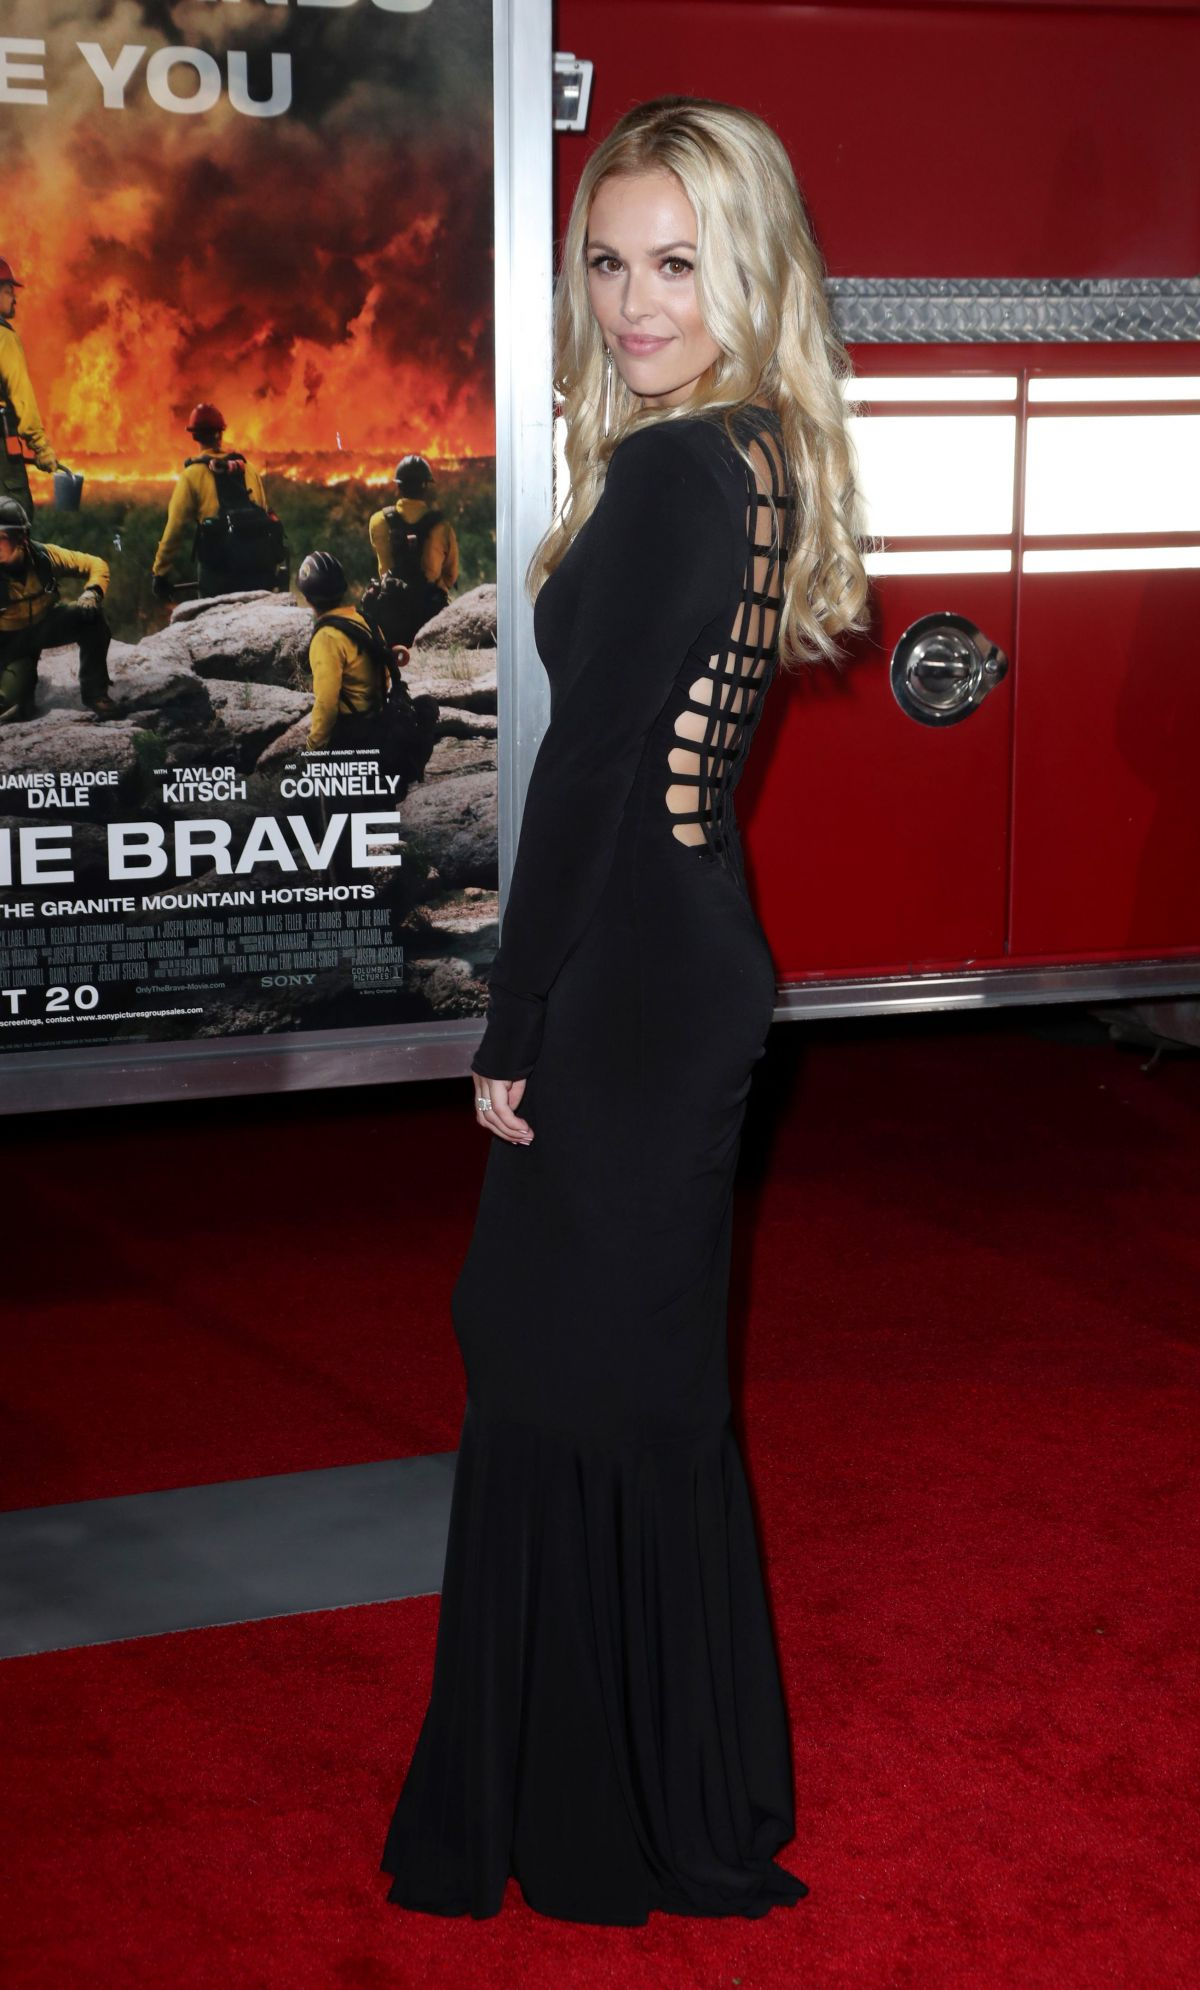 Natalie Hall At 'Only The Brave' film premiere, Los Angeles   natalie-hall-at-only-the-brave-film-premiere-los-angeles-4